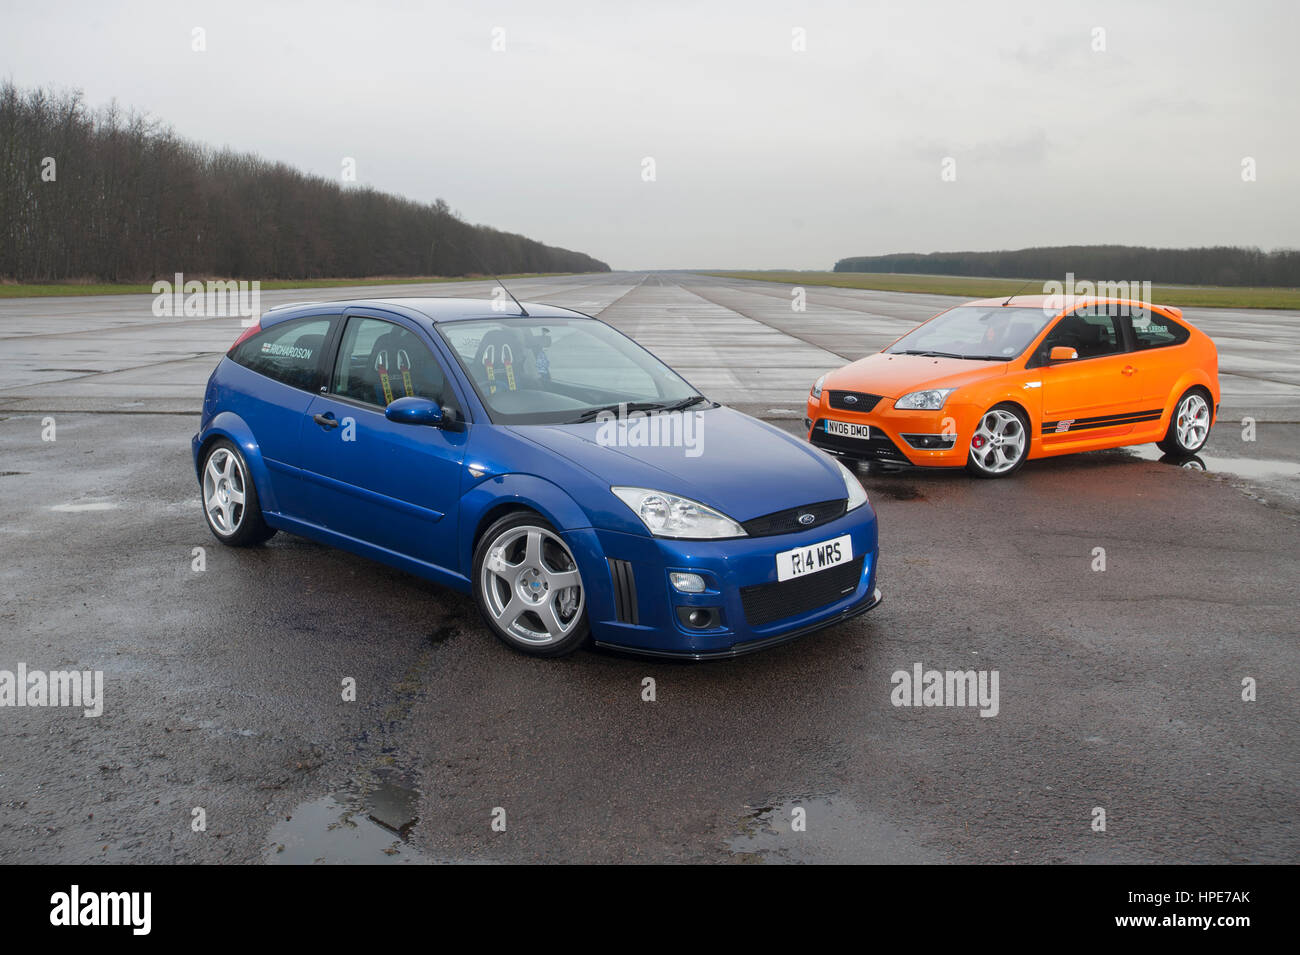 blue mk1 ford focus rs and orange mk2 focus st stock photo royalty free image 134308123 alamy. Black Bedroom Furniture Sets. Home Design Ideas